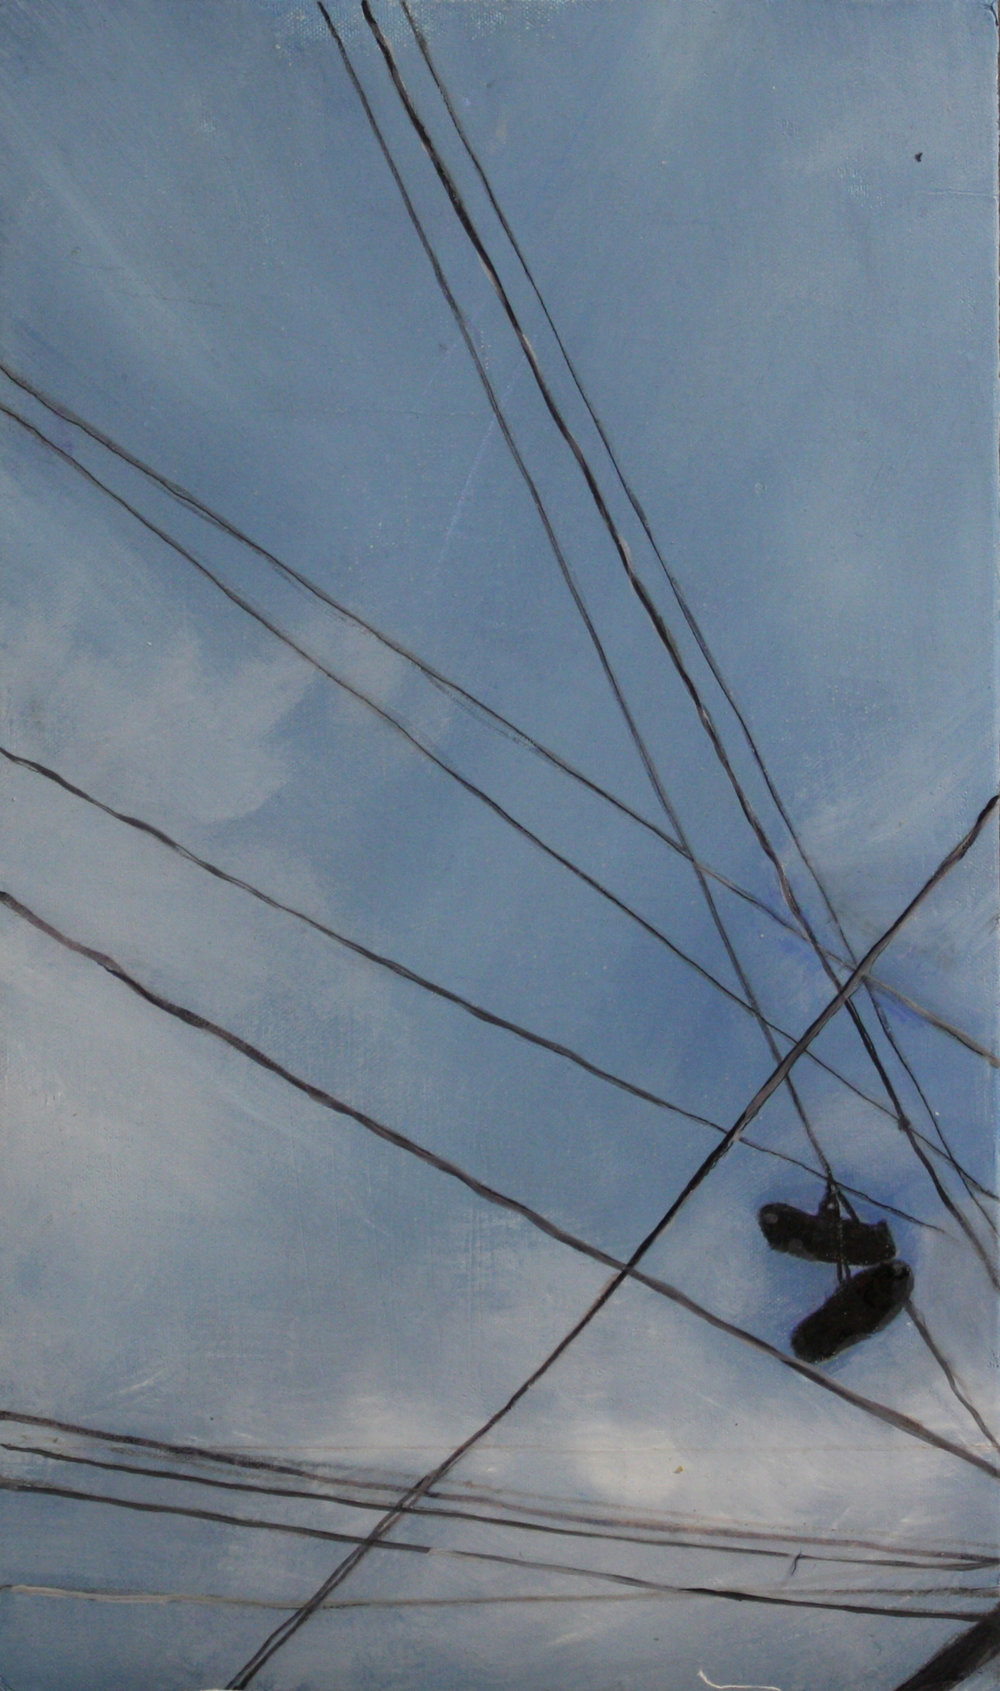 Wires: S hoes   2011, oil on canvas  50 x 76 cm